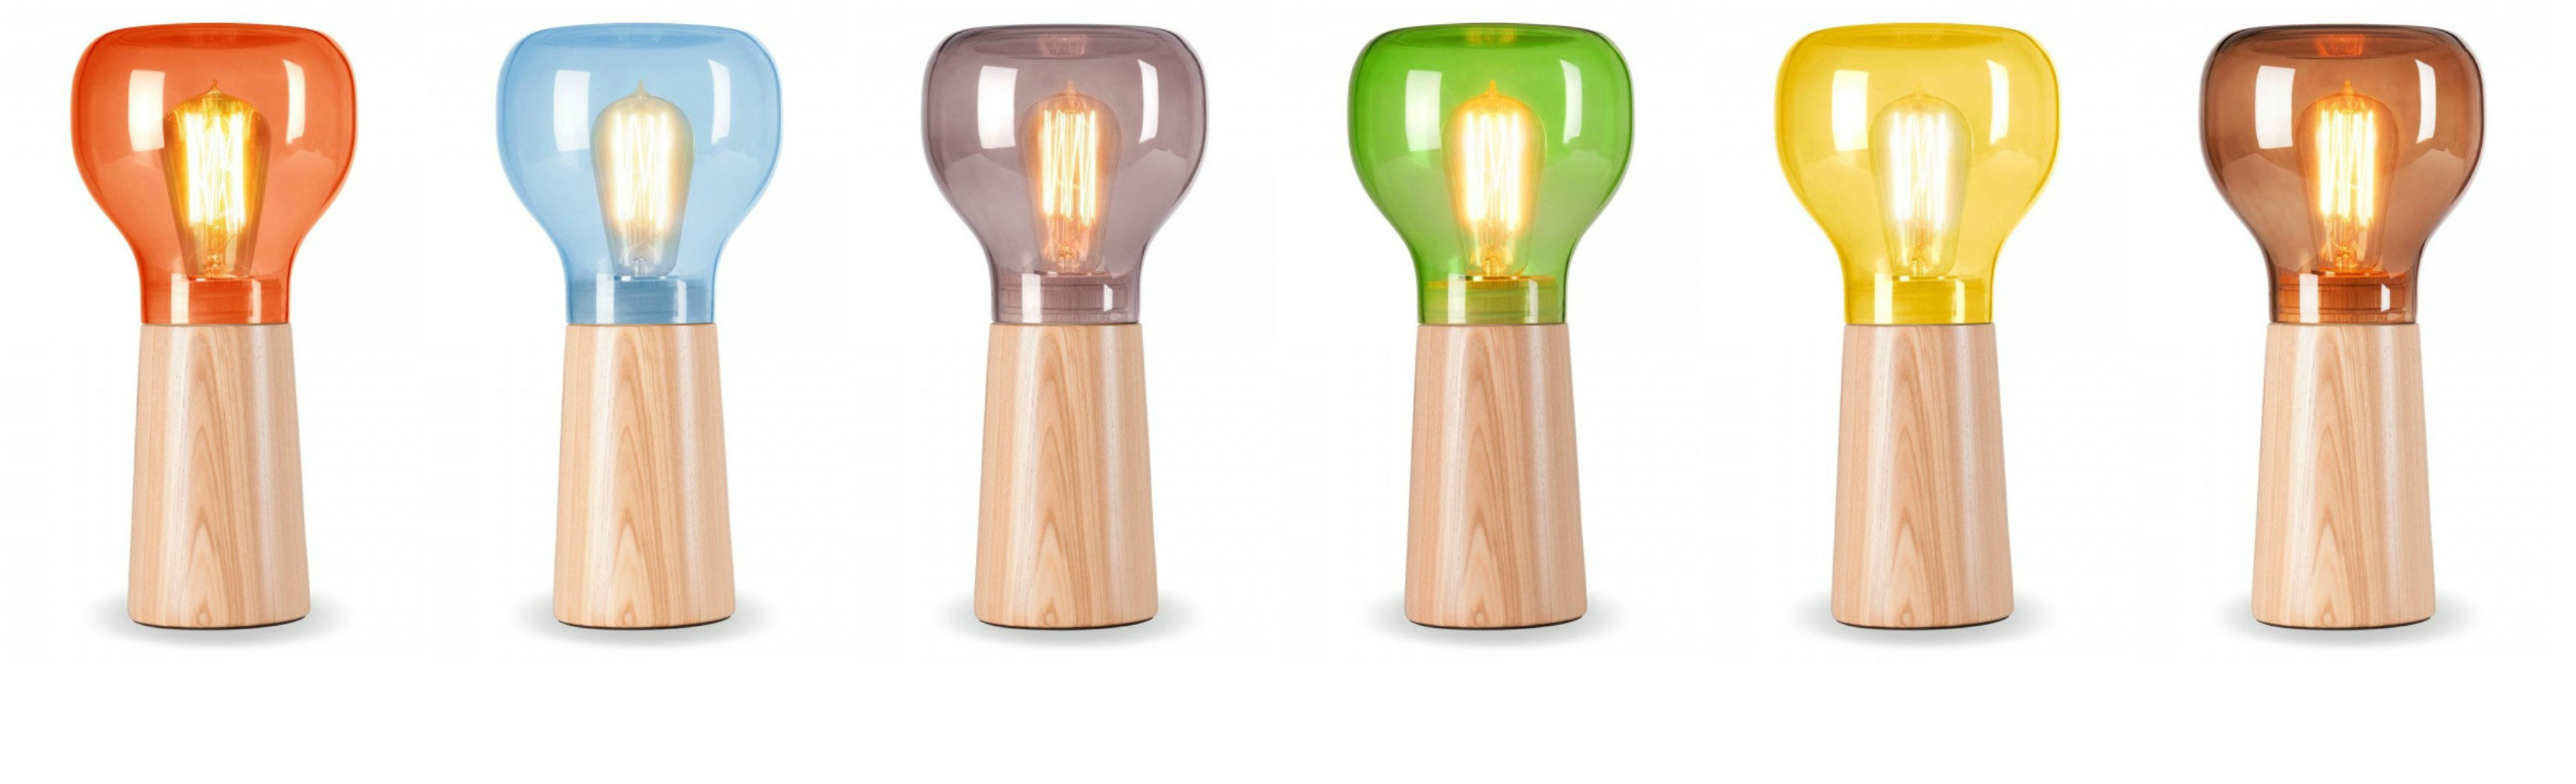 Lampes-design-champignon-Cult-Living-Entonnoir